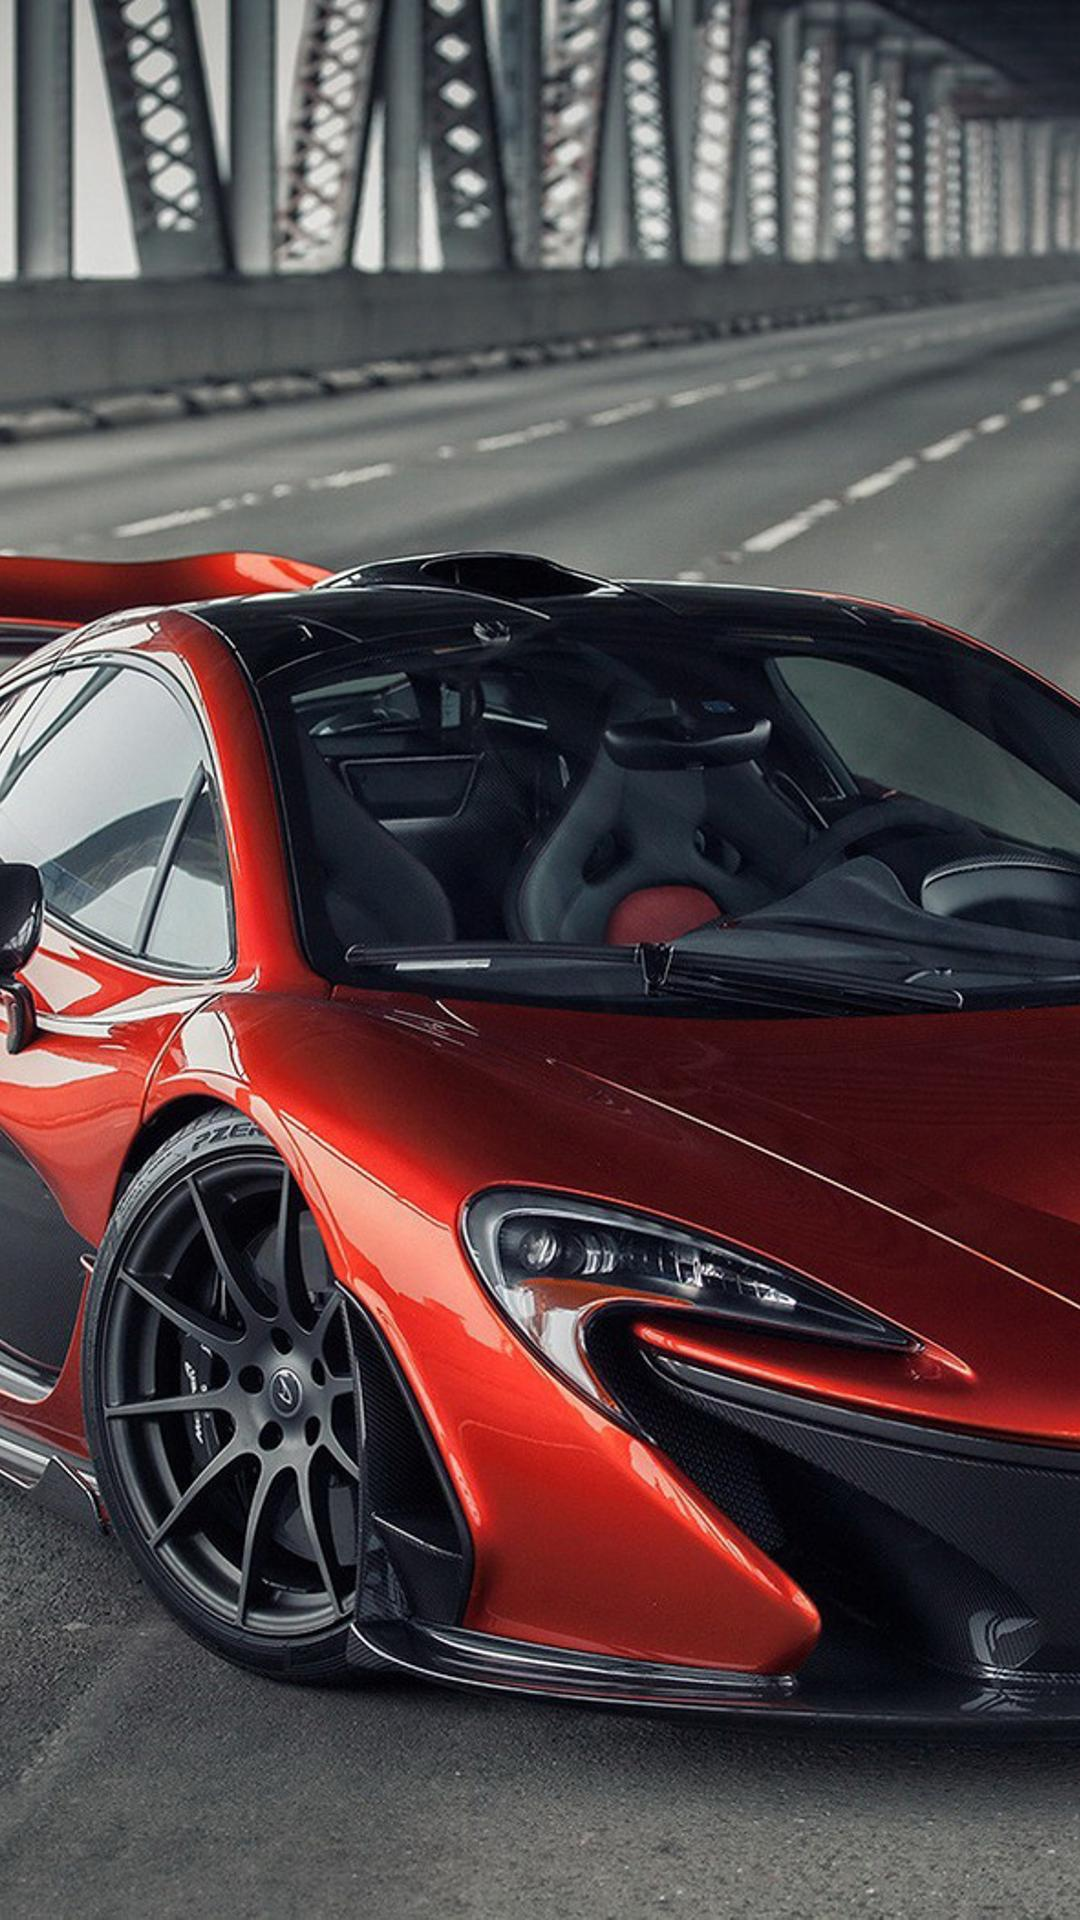 Download Wallpaper 1080x1920 Red McLaren P1 On A Bridge   Sport Car